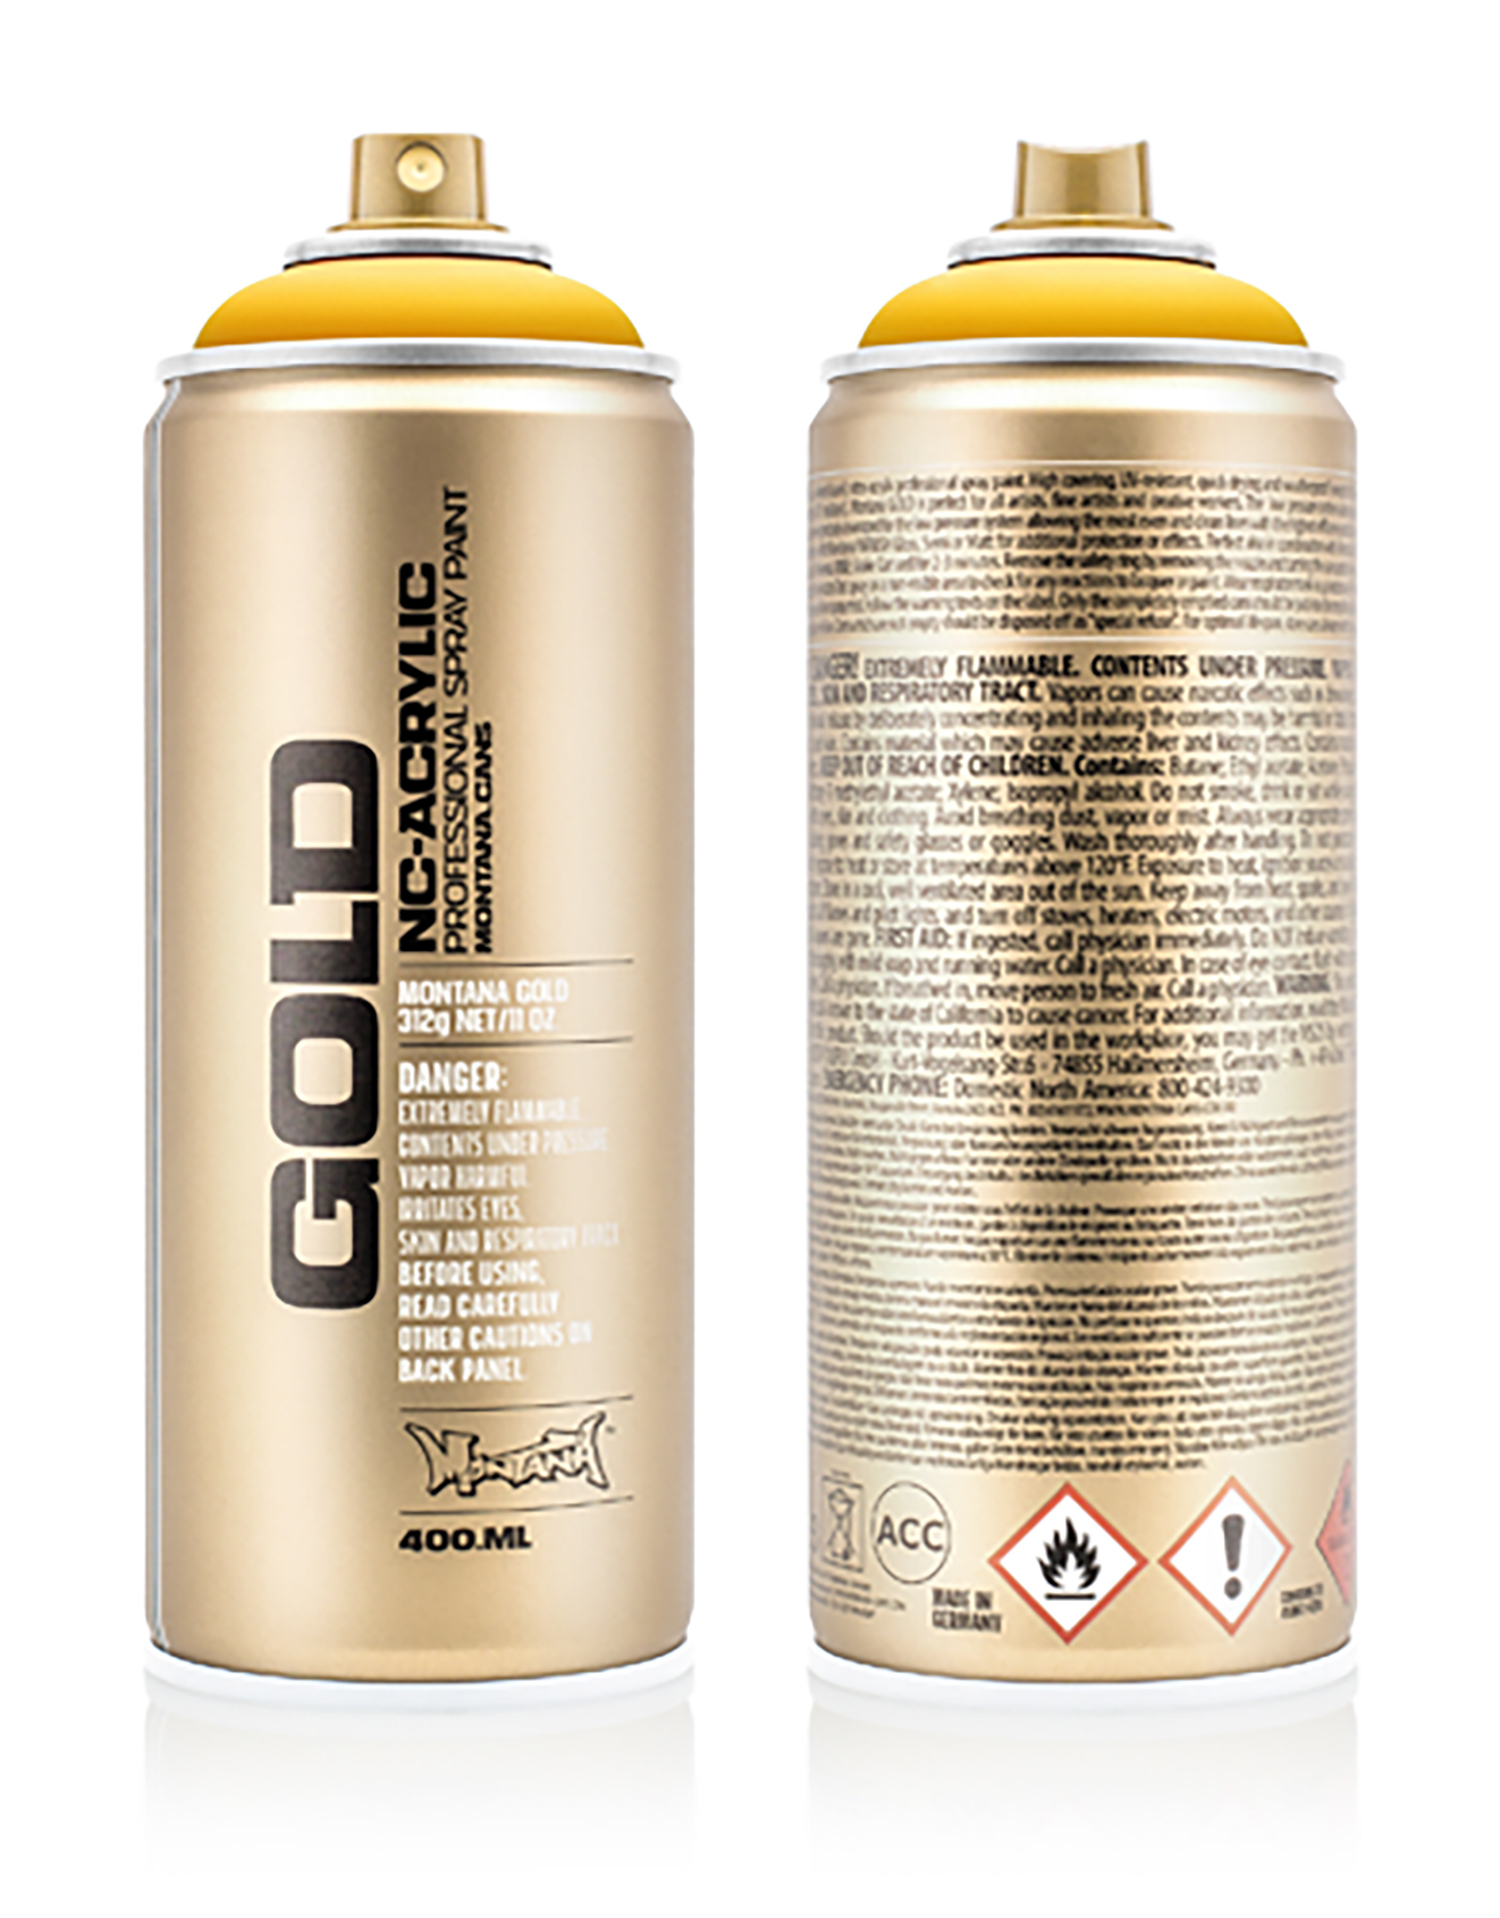 MONTANA-GOLD-SPRAY-400ML-G-1220